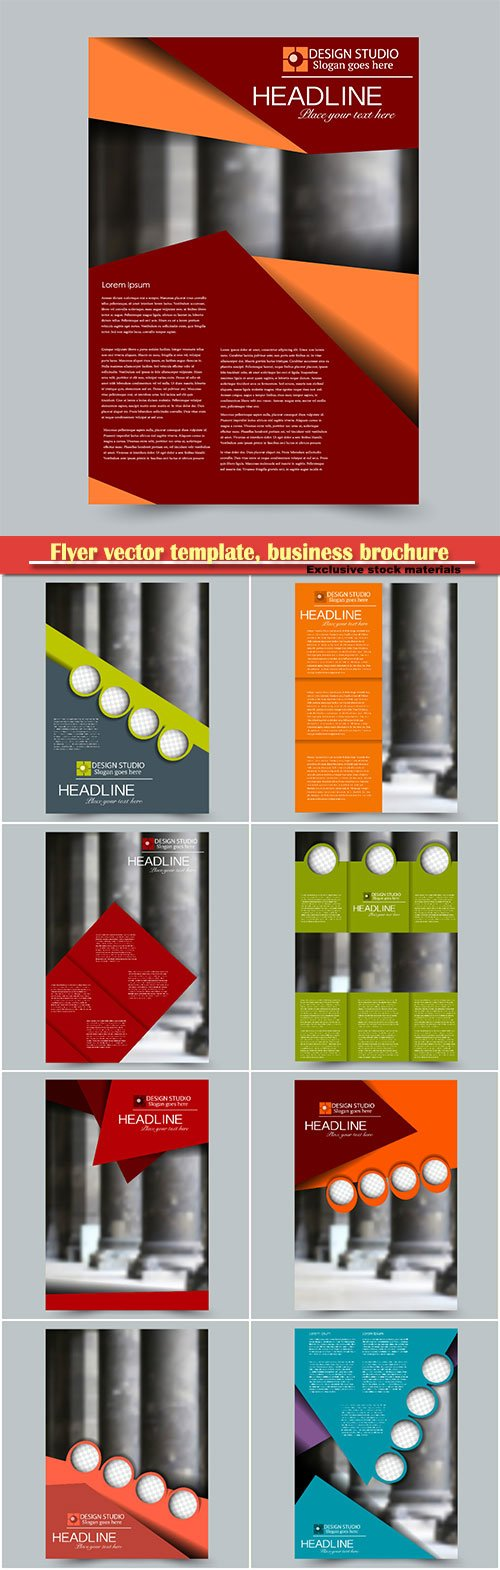 Flyer vector template, business brochure, magazine cover # 39